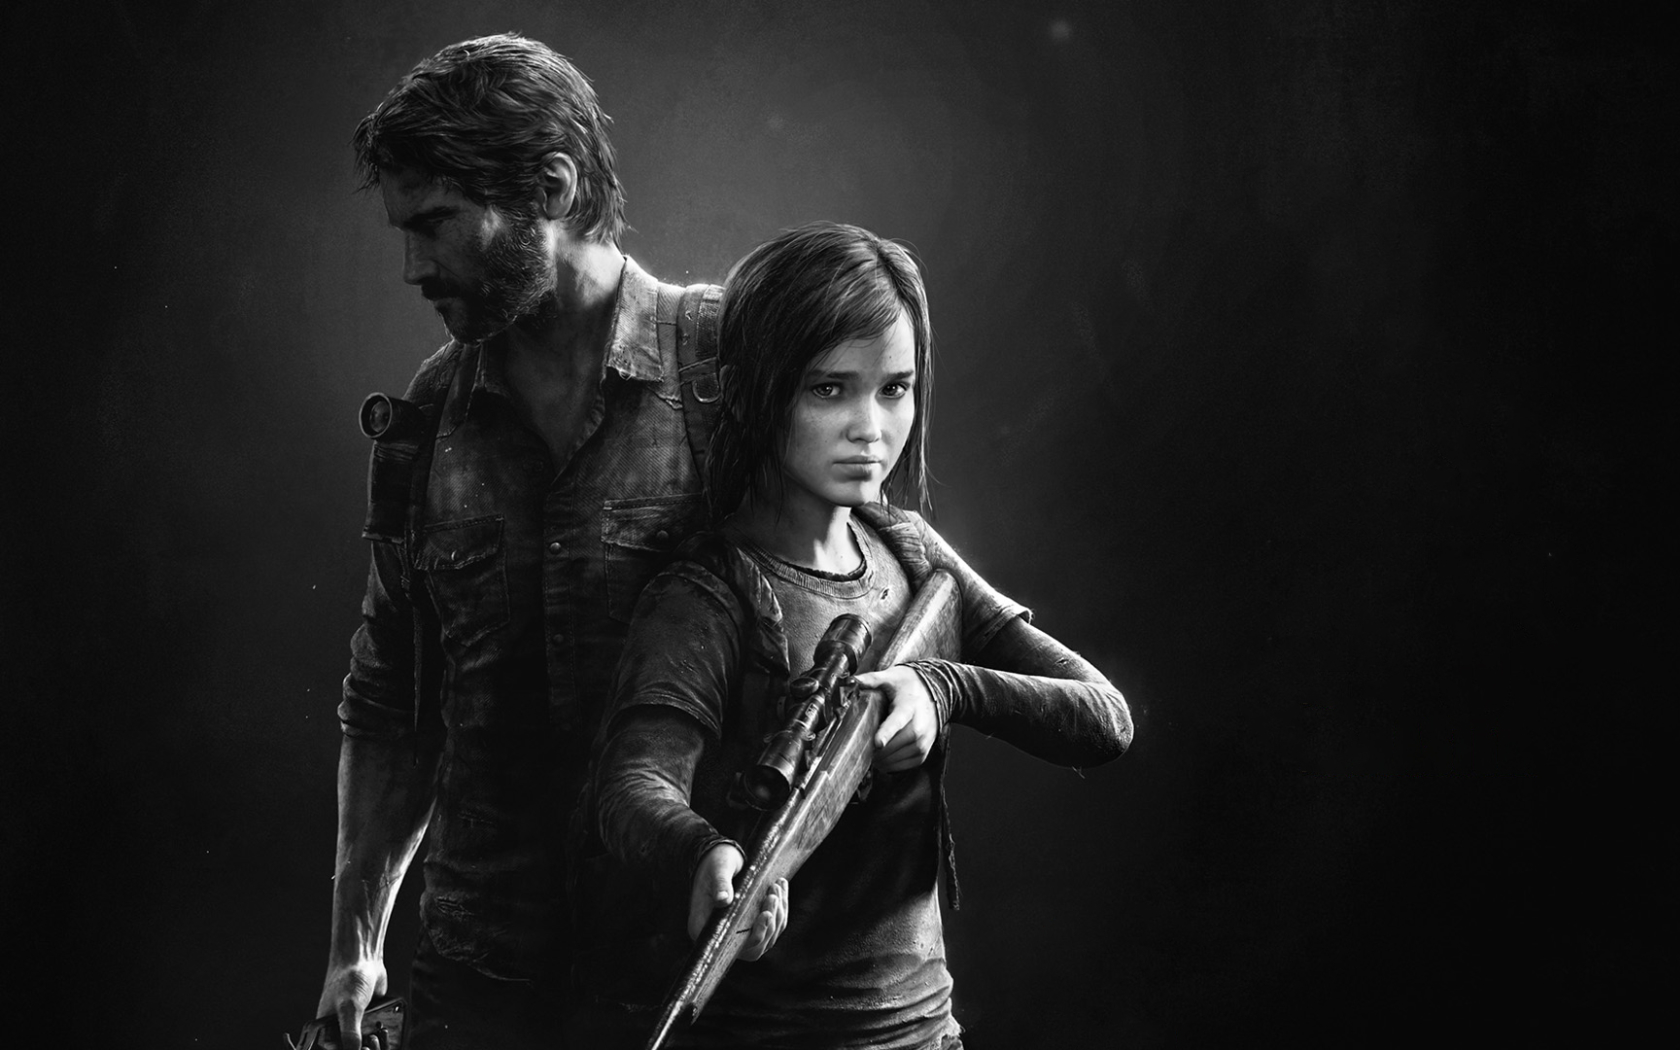 1680x1050 The Last of Us Remastered 1680x1050 Resolution ...